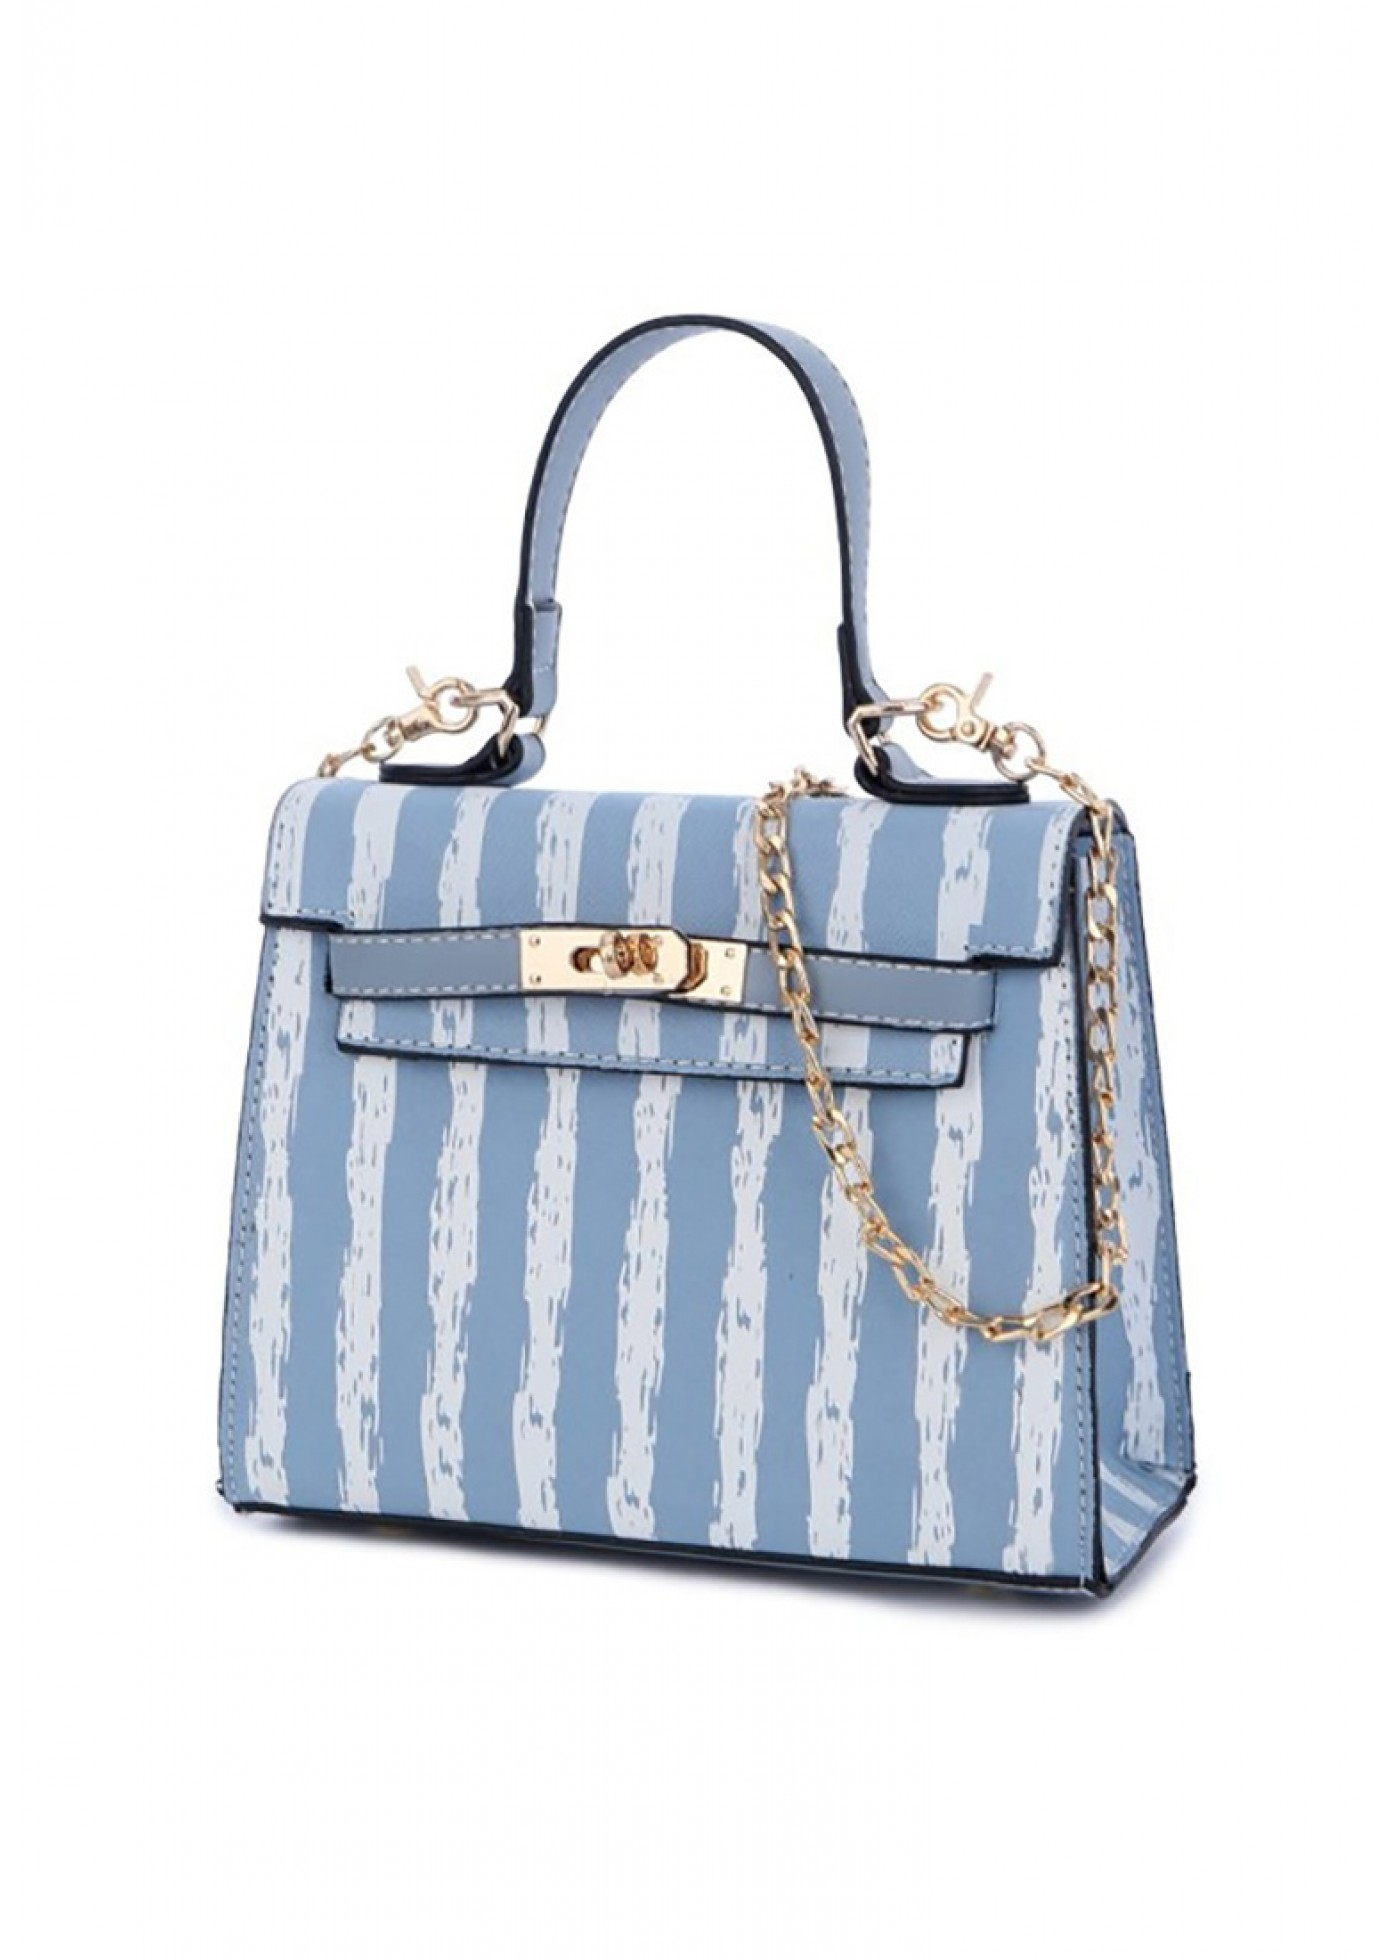 [NEW] Goddess Armie Blue Bag